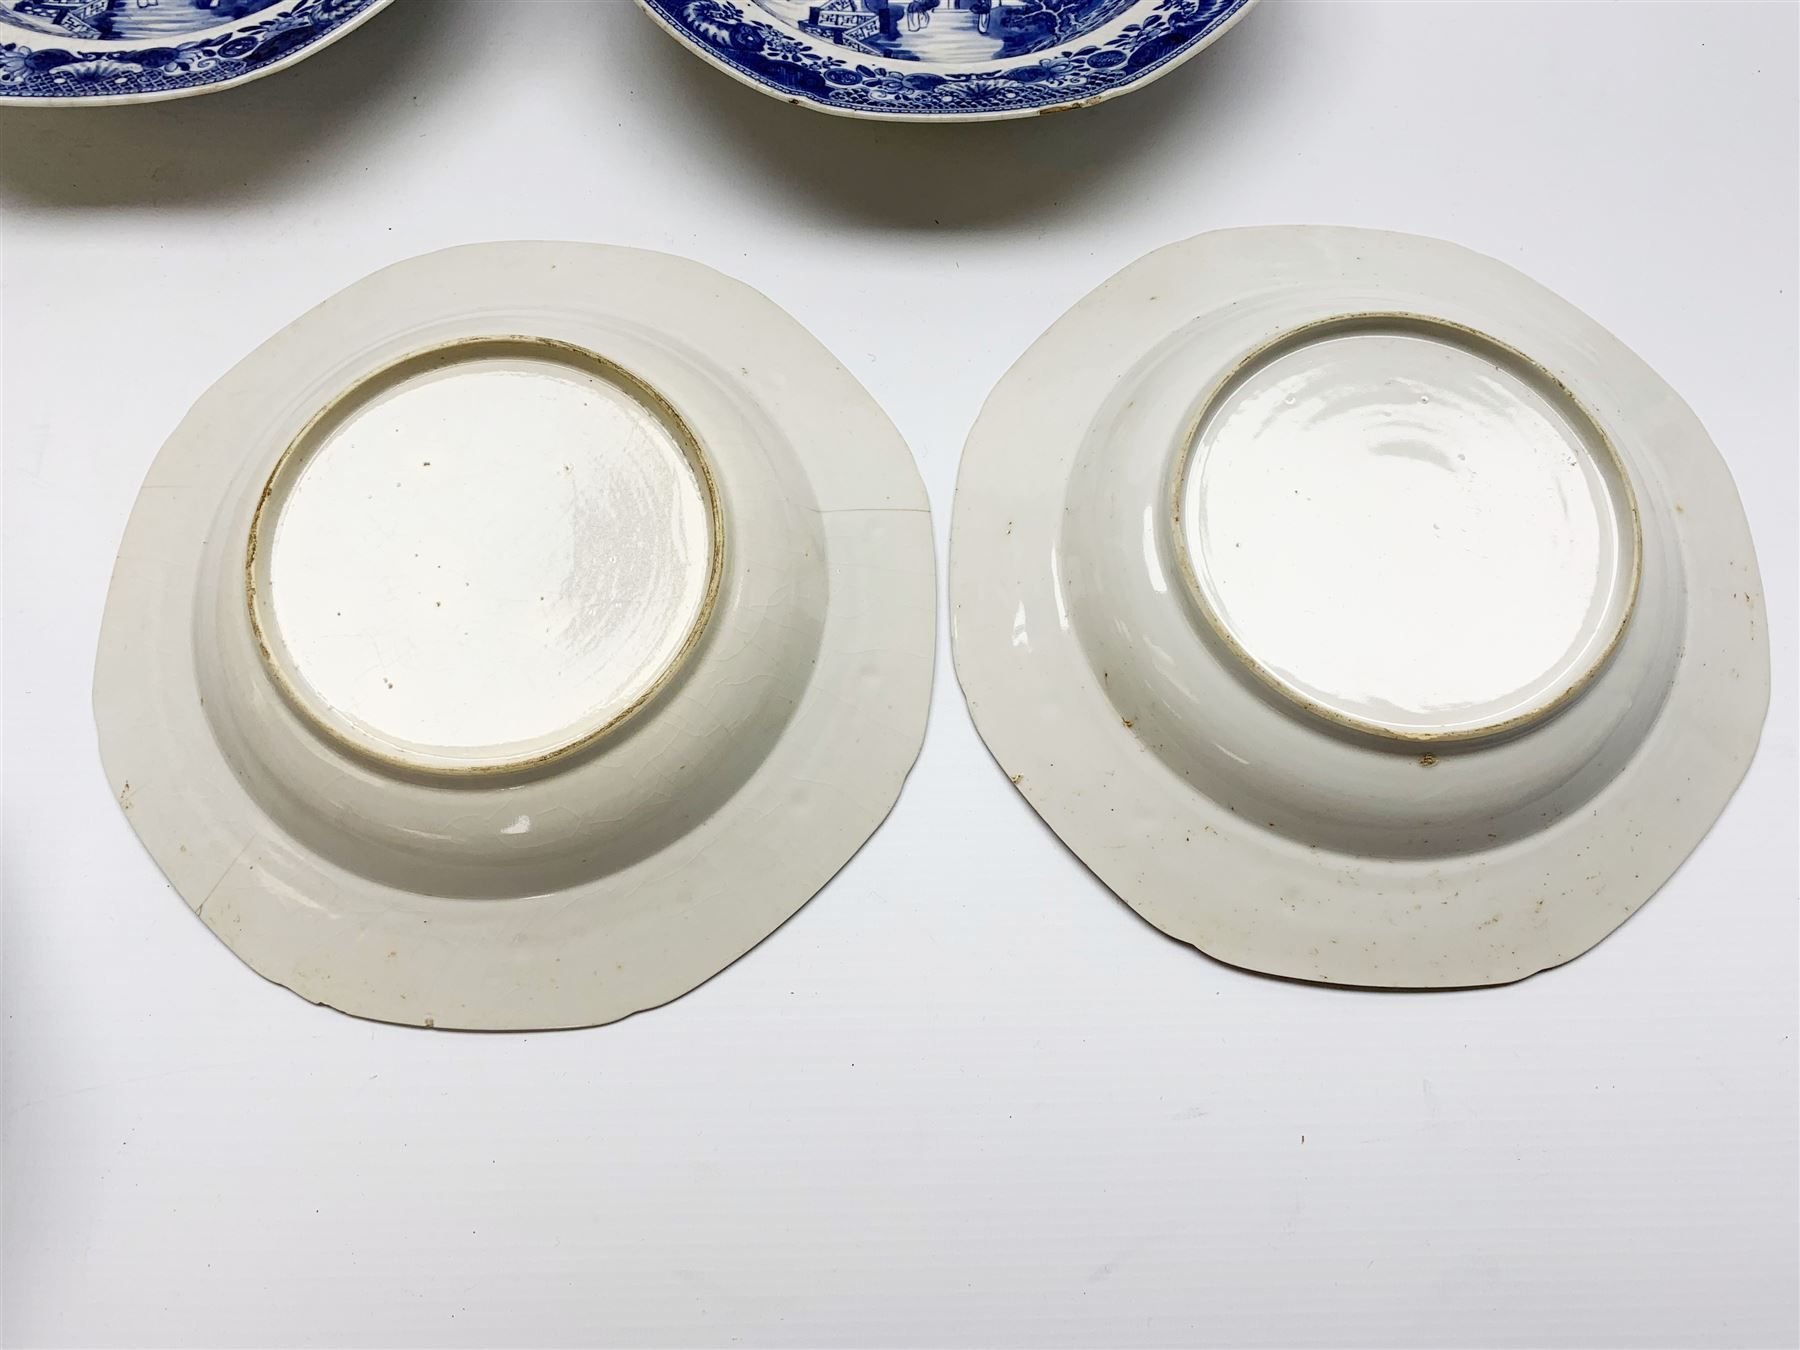 Late 18th/early 19th century Chinese export blue and white forty seven piece part dinner service - Image 8 of 20